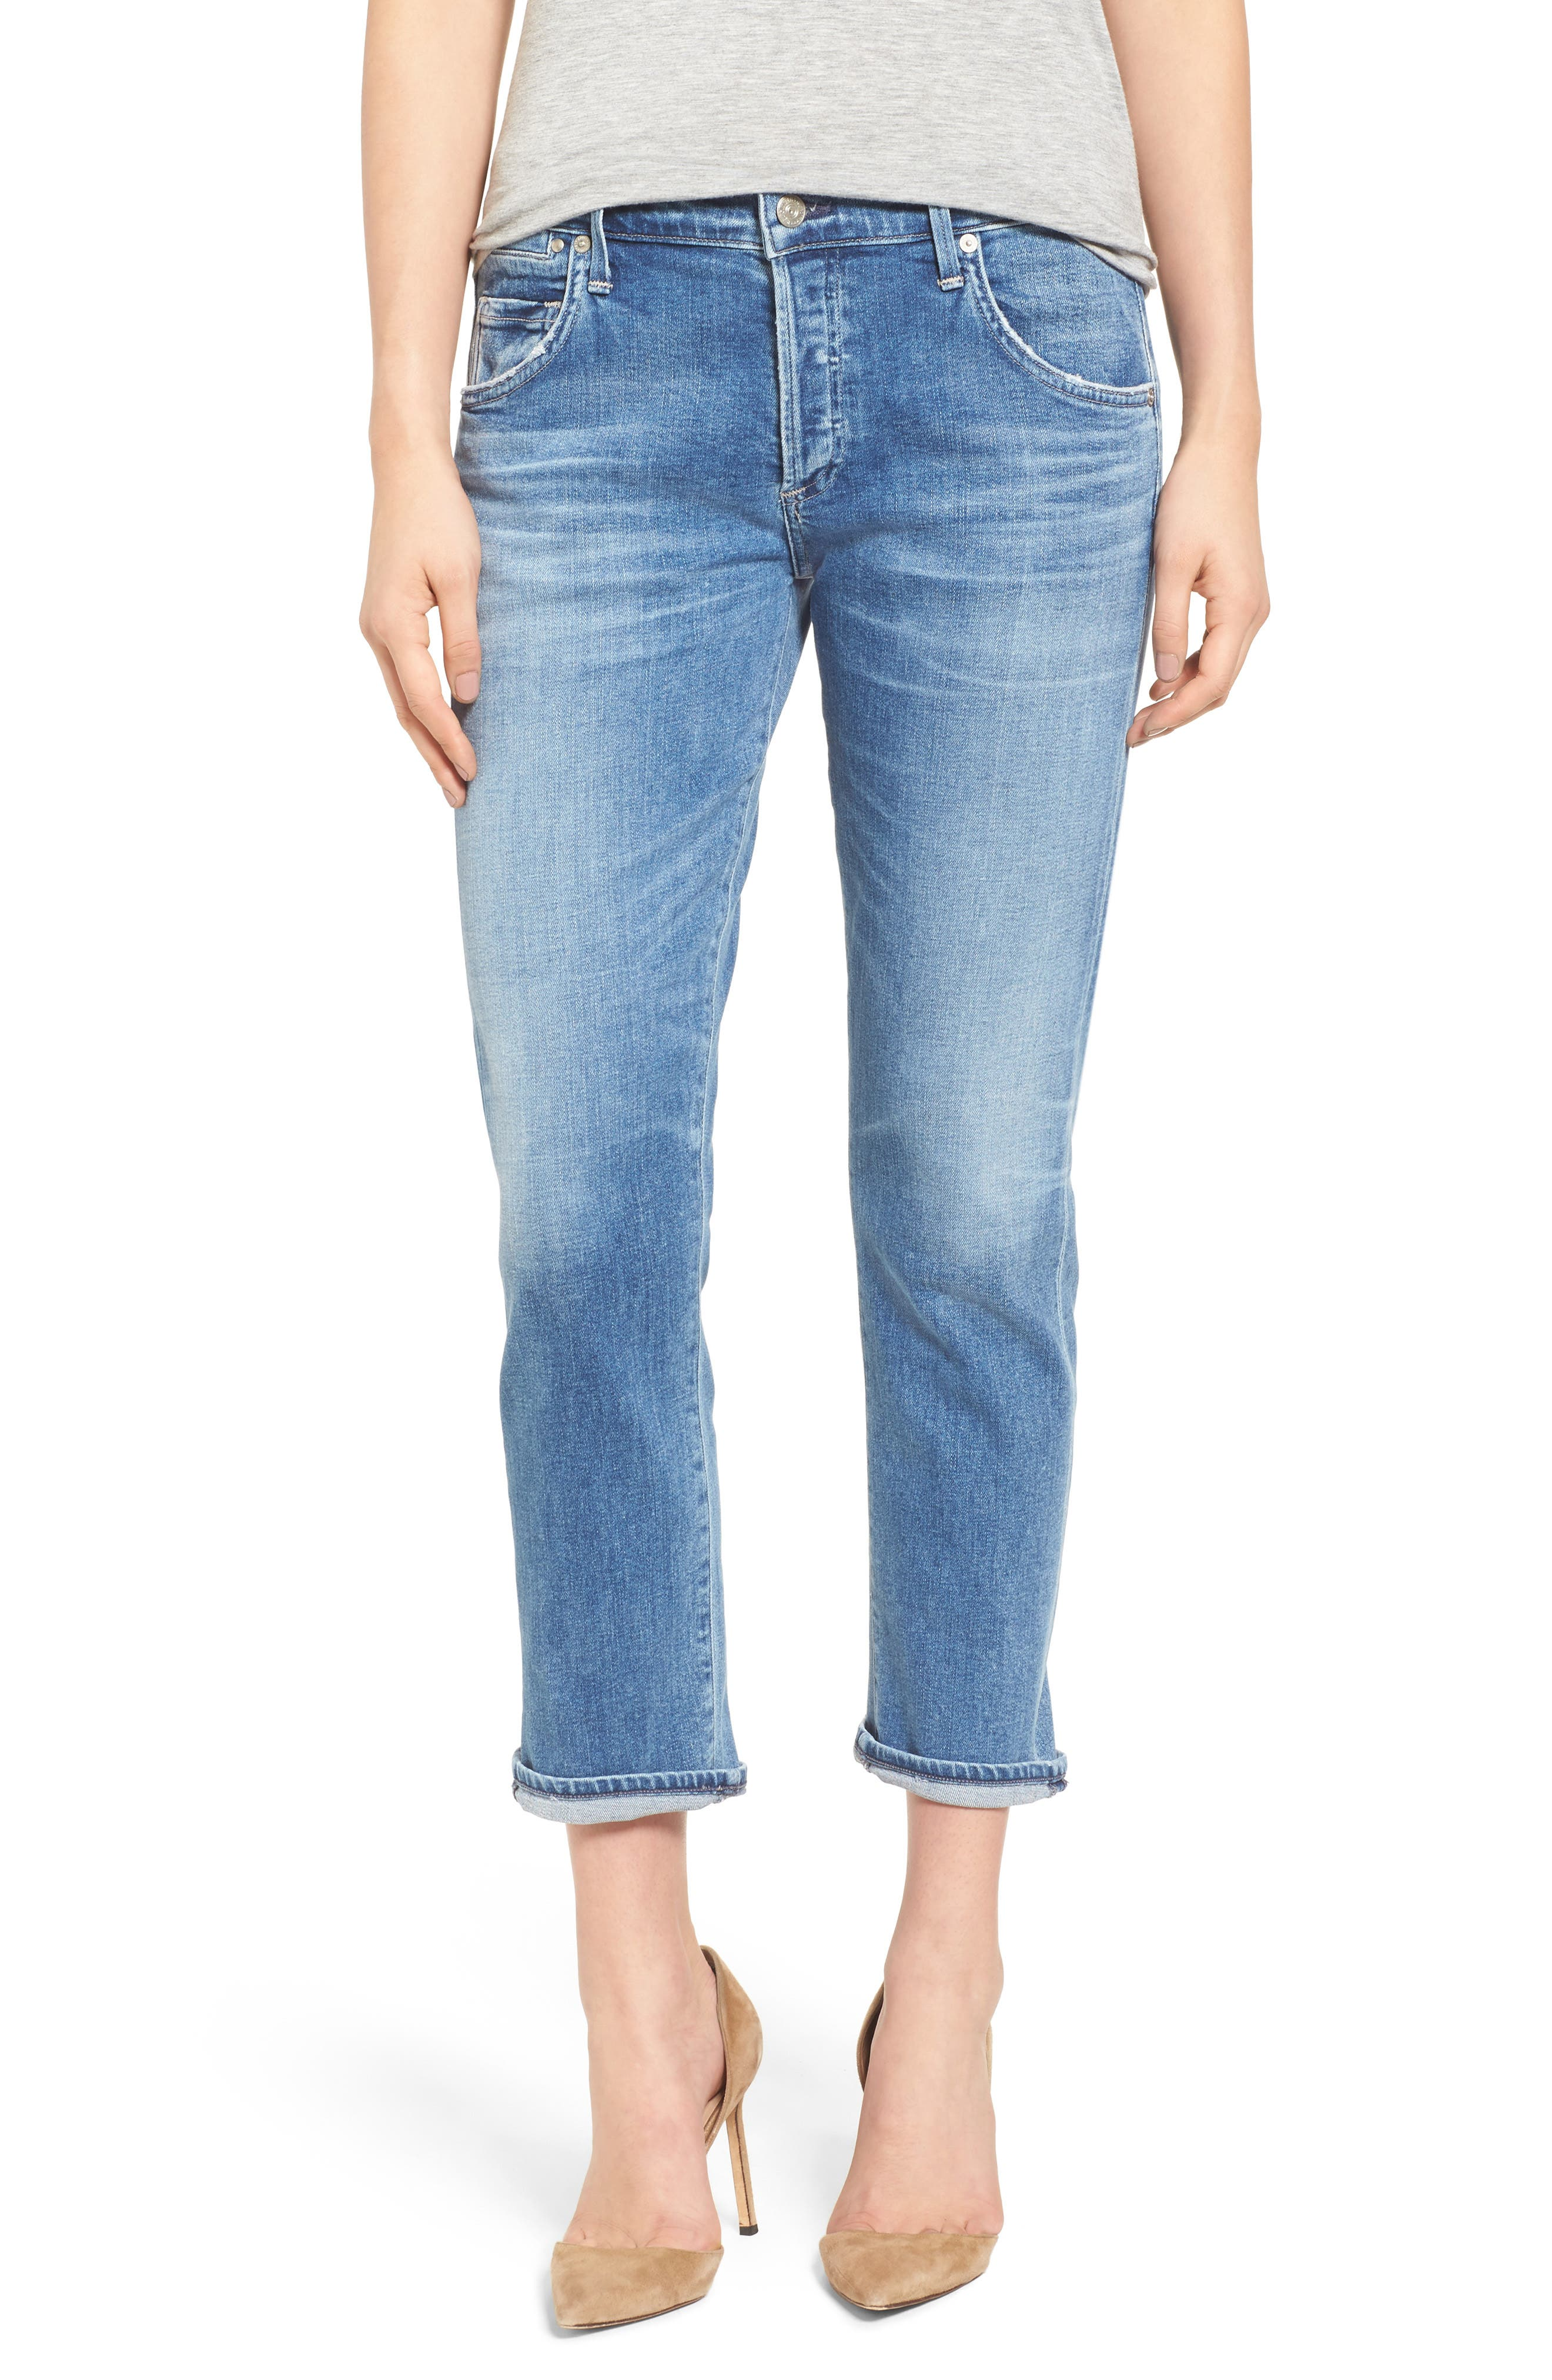 Emerson Slim Boyfriend Jeans,                             Main thumbnail 1, color,                             424